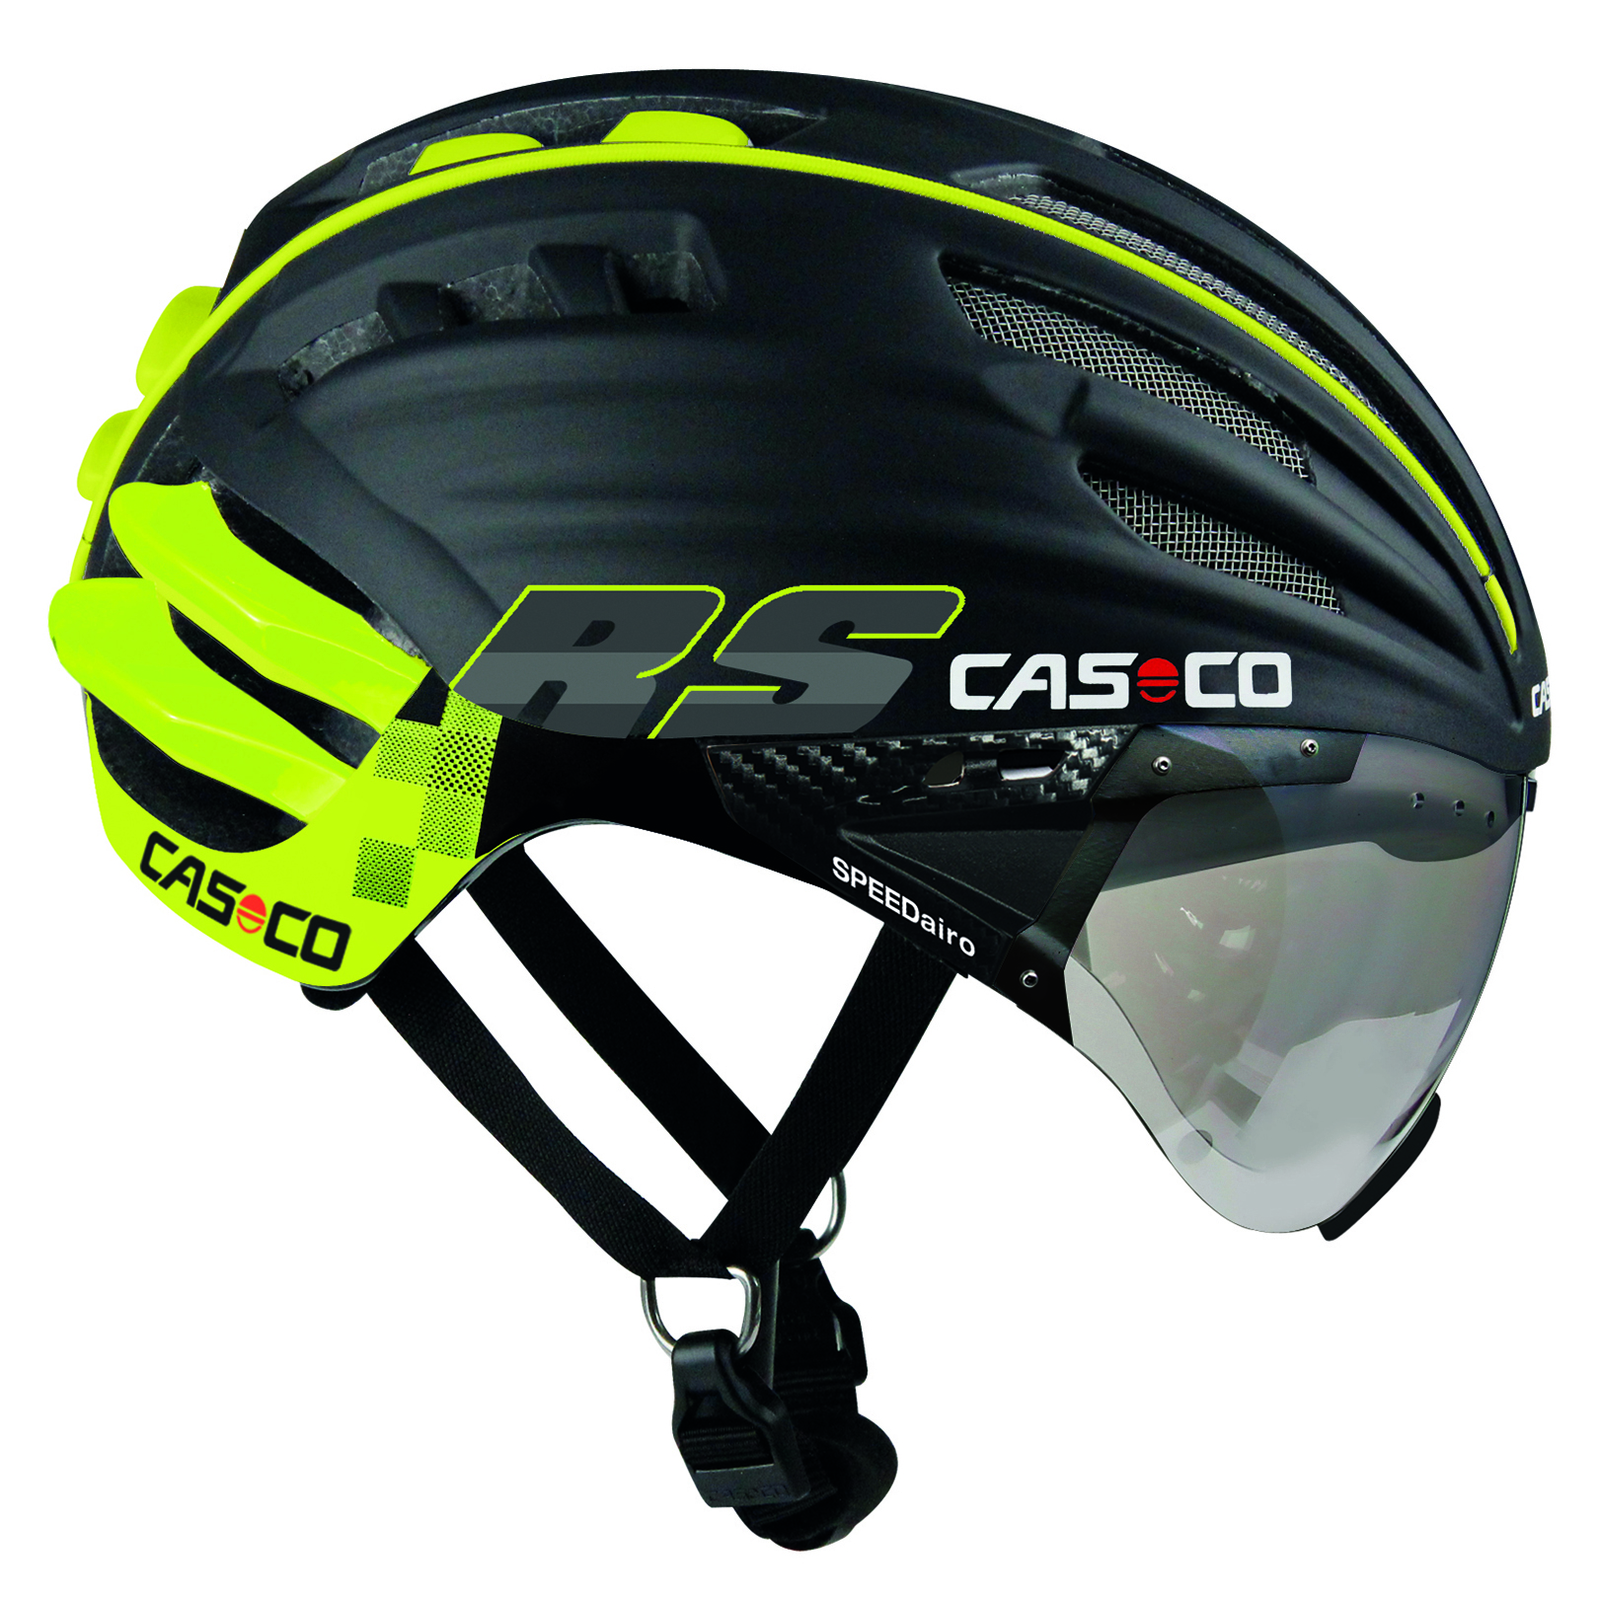 Casco Speedairo RS Helmet with Vautron Visor - Black/Neon